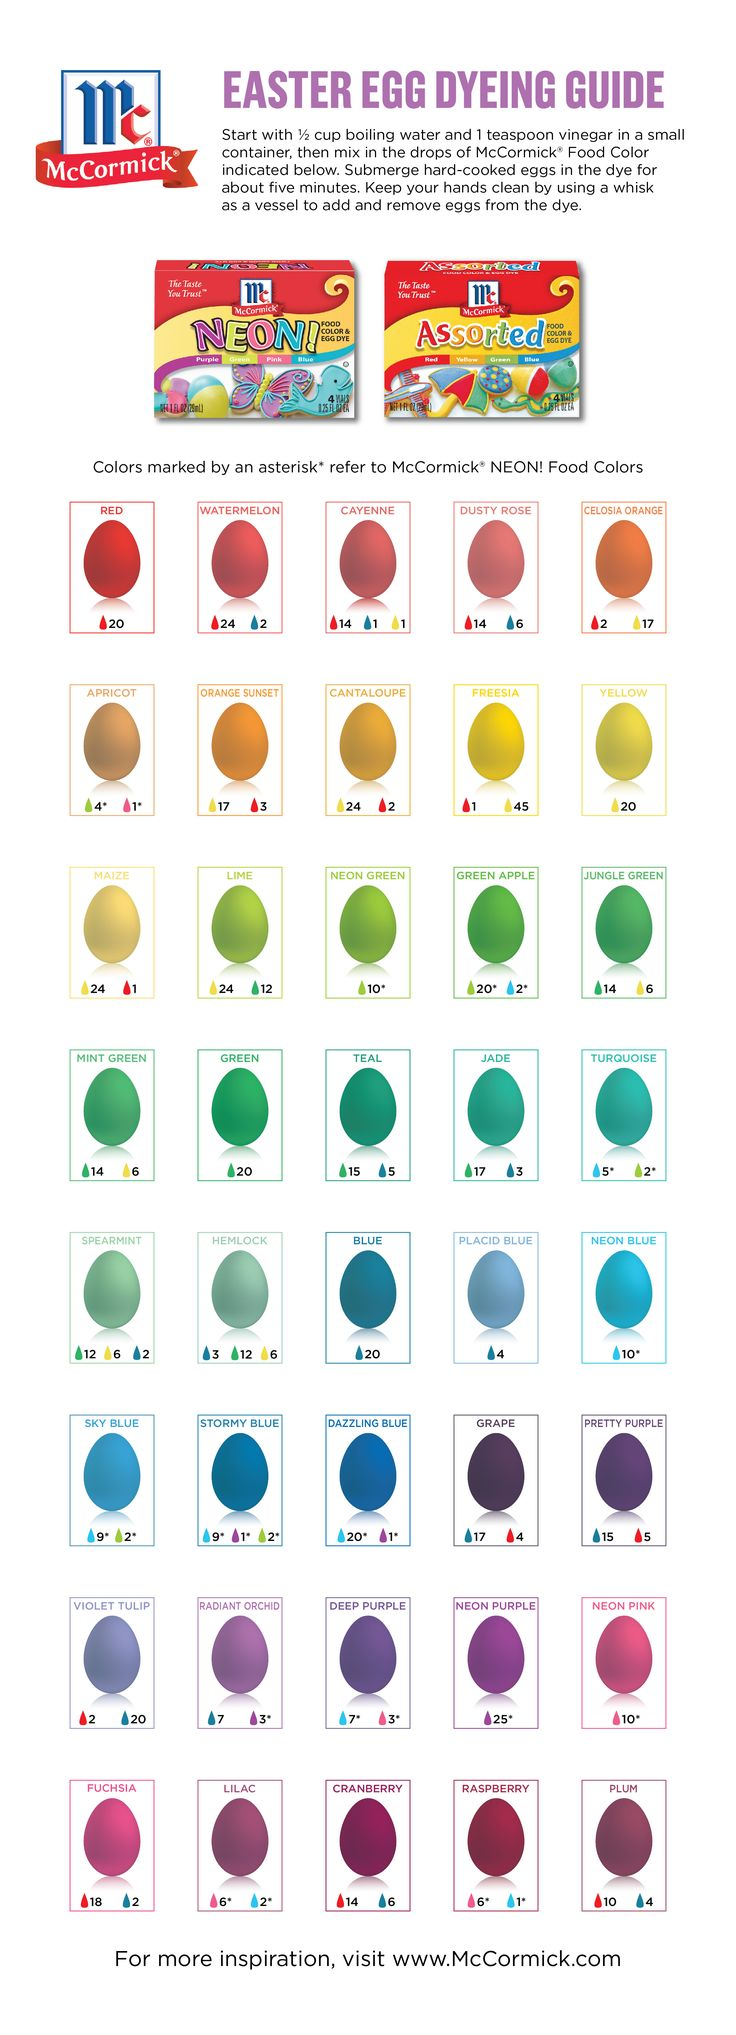 Easter_Egg_Color_Guide.jpg 2,550×7,052 pixels